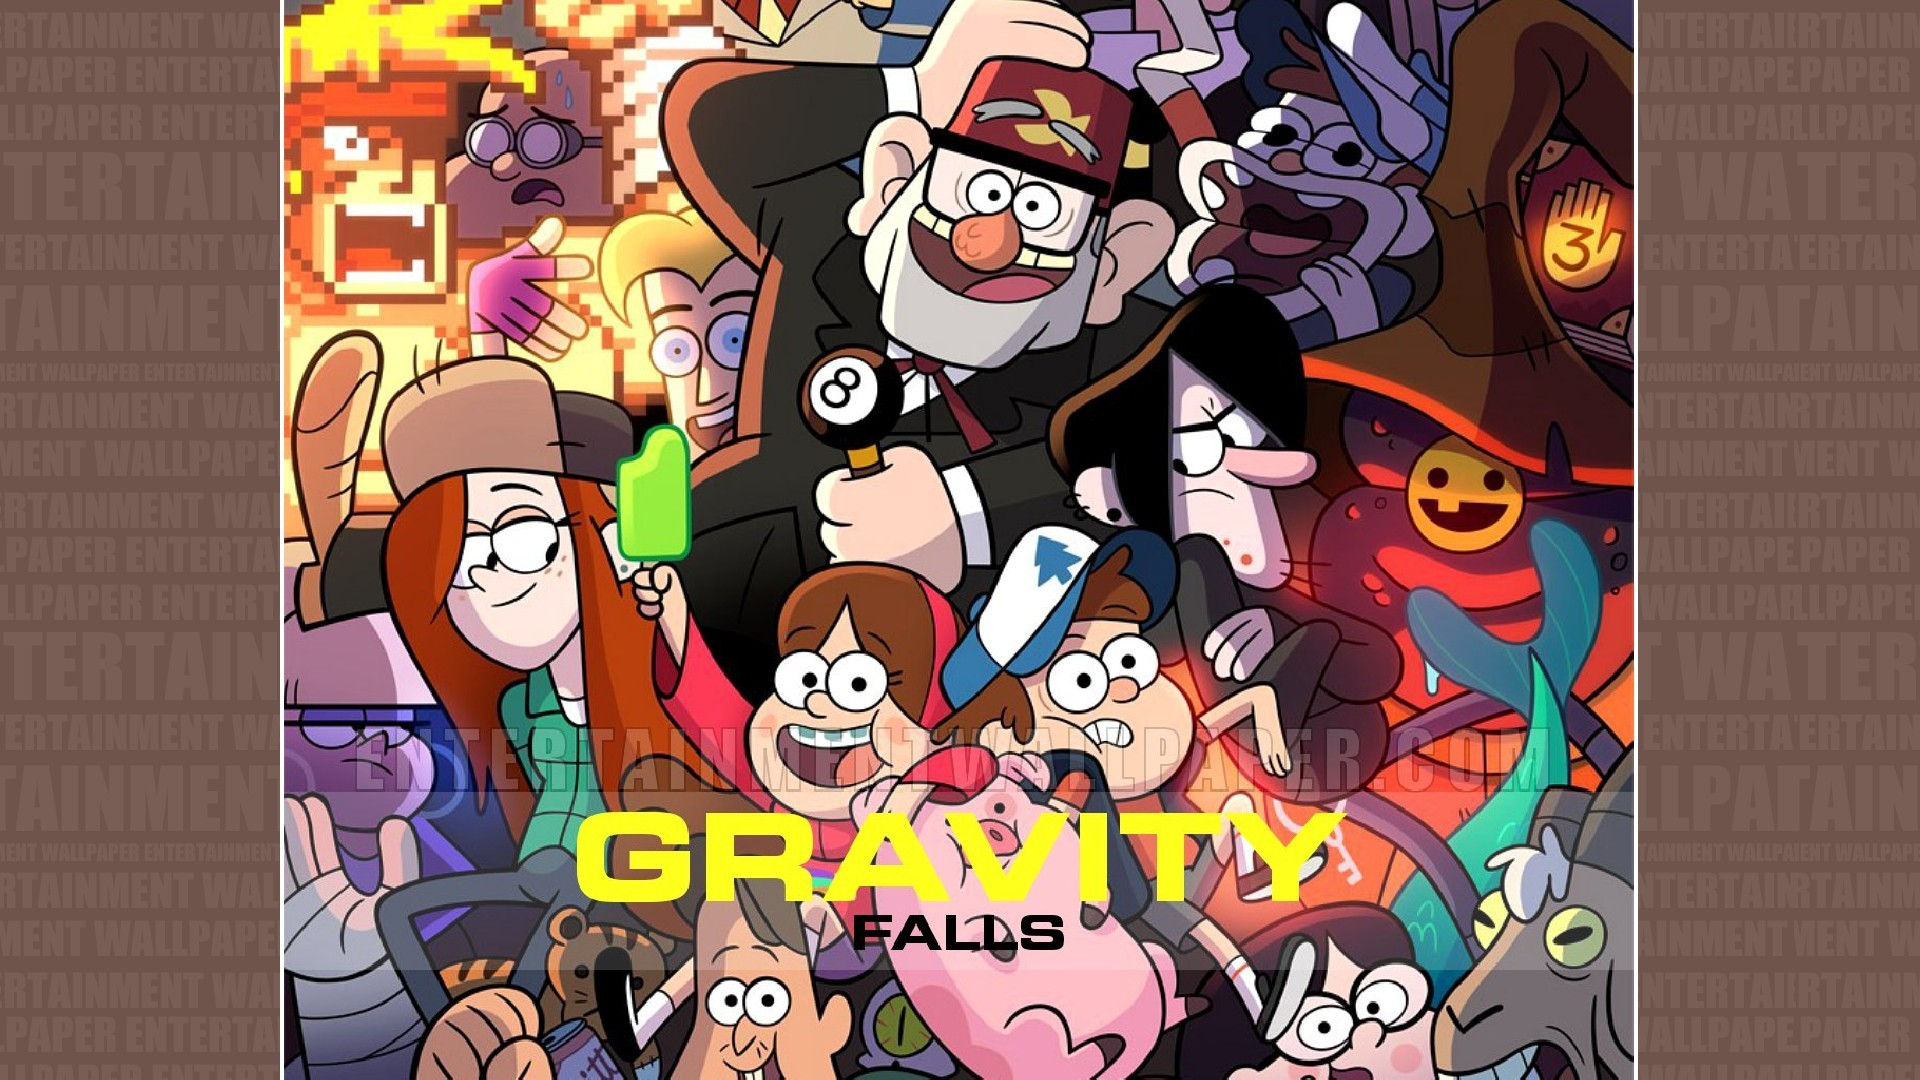 Gravity Falls Phone Wallpaper Gravity Falls Wallpaper Phone 71 Images